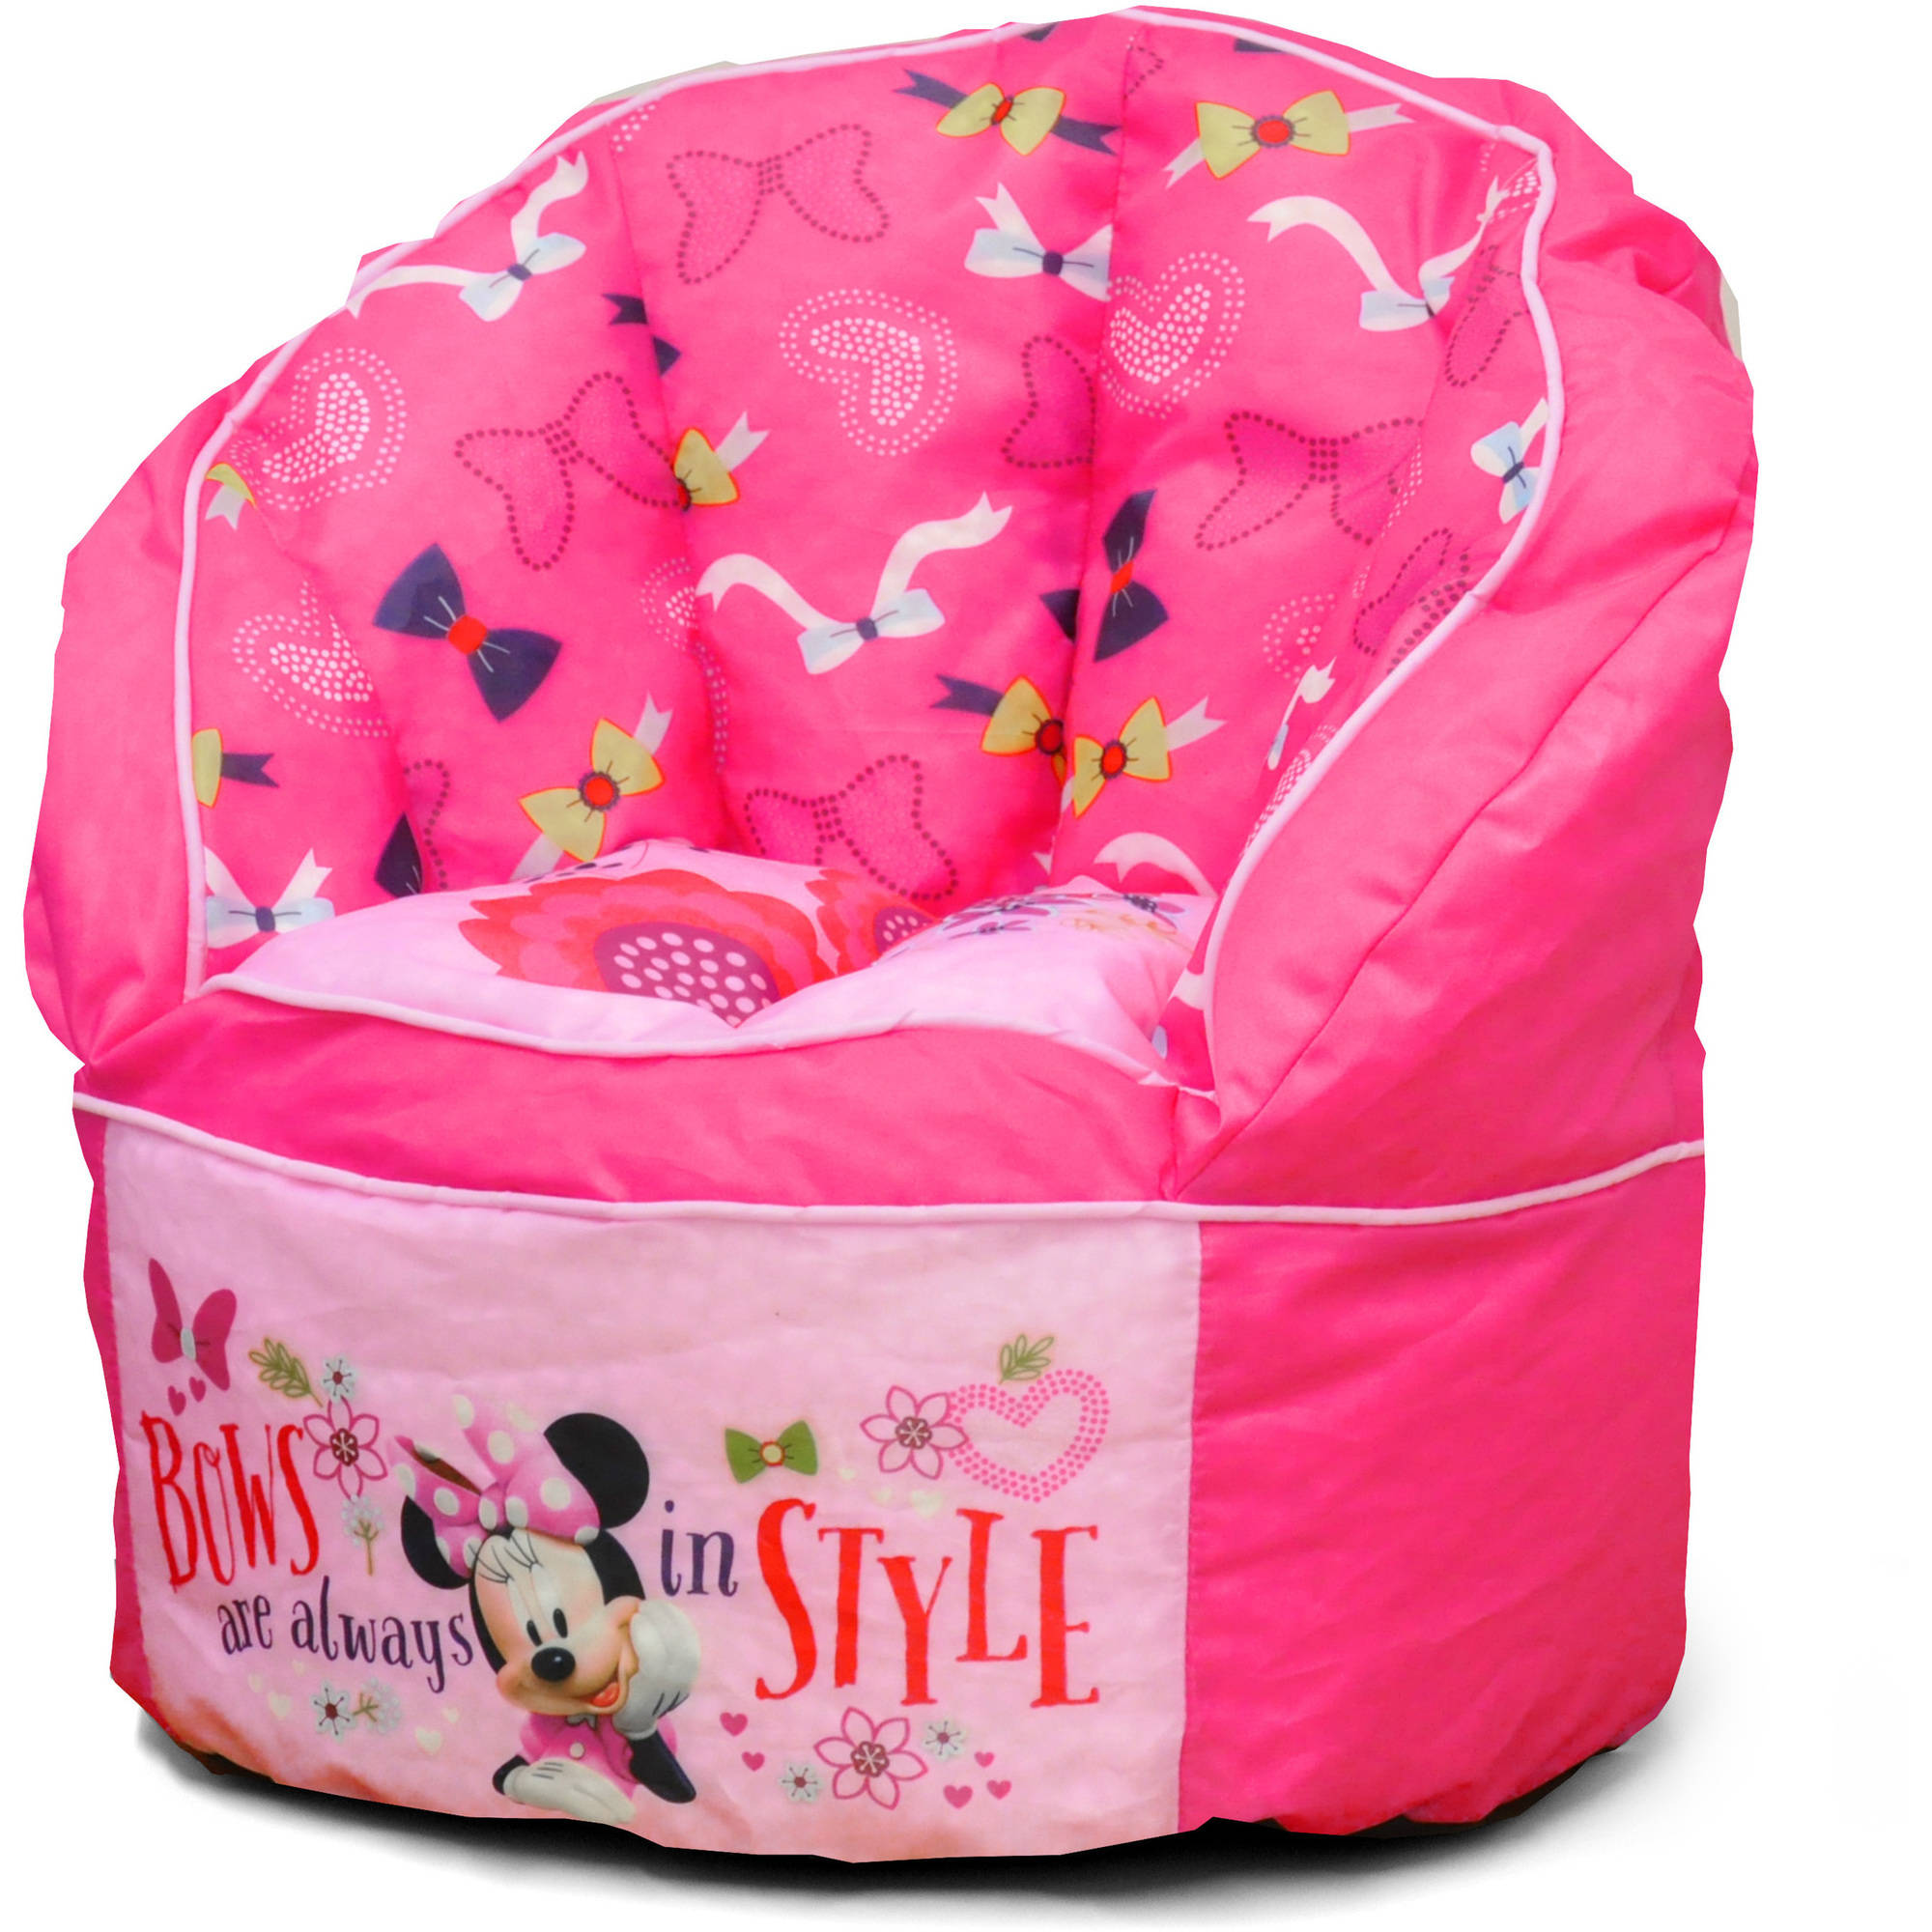 Disney Minnie Mouse Sofa Bean Chair with Piping